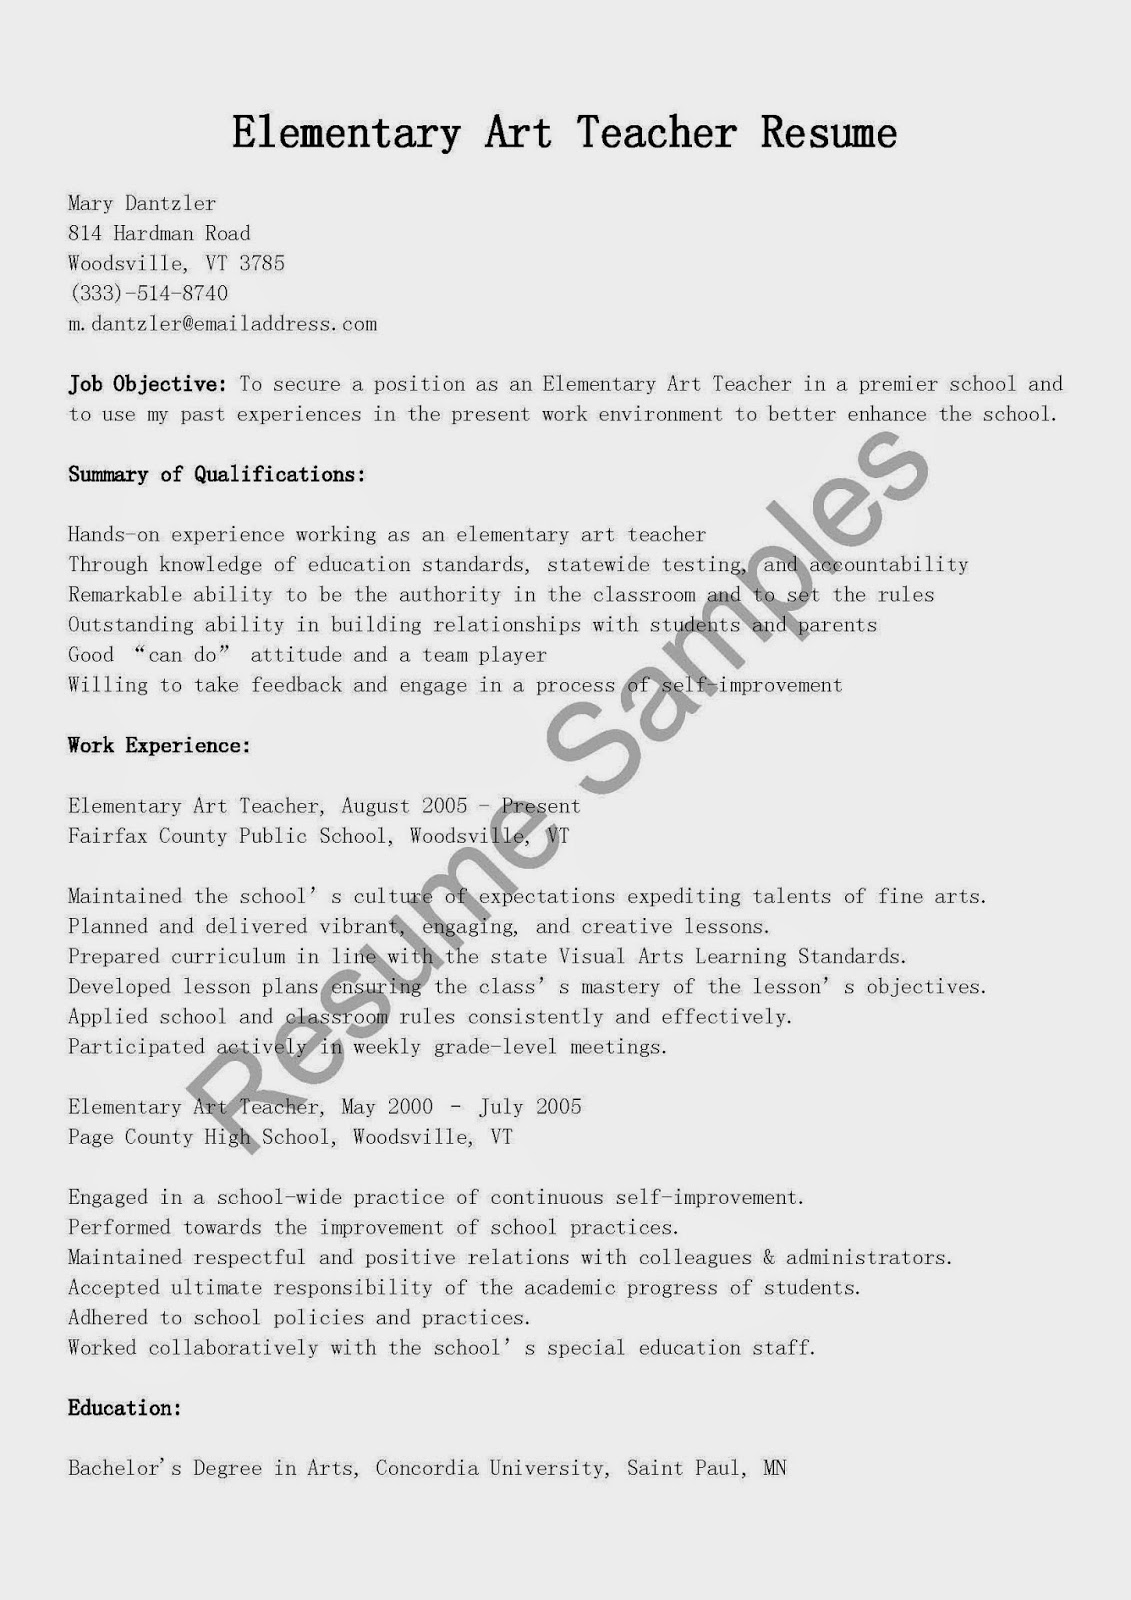 Professional thesis ghostwriters services for university essays art teacher cover letter free pdf template download sample templates yelopaper Gallery